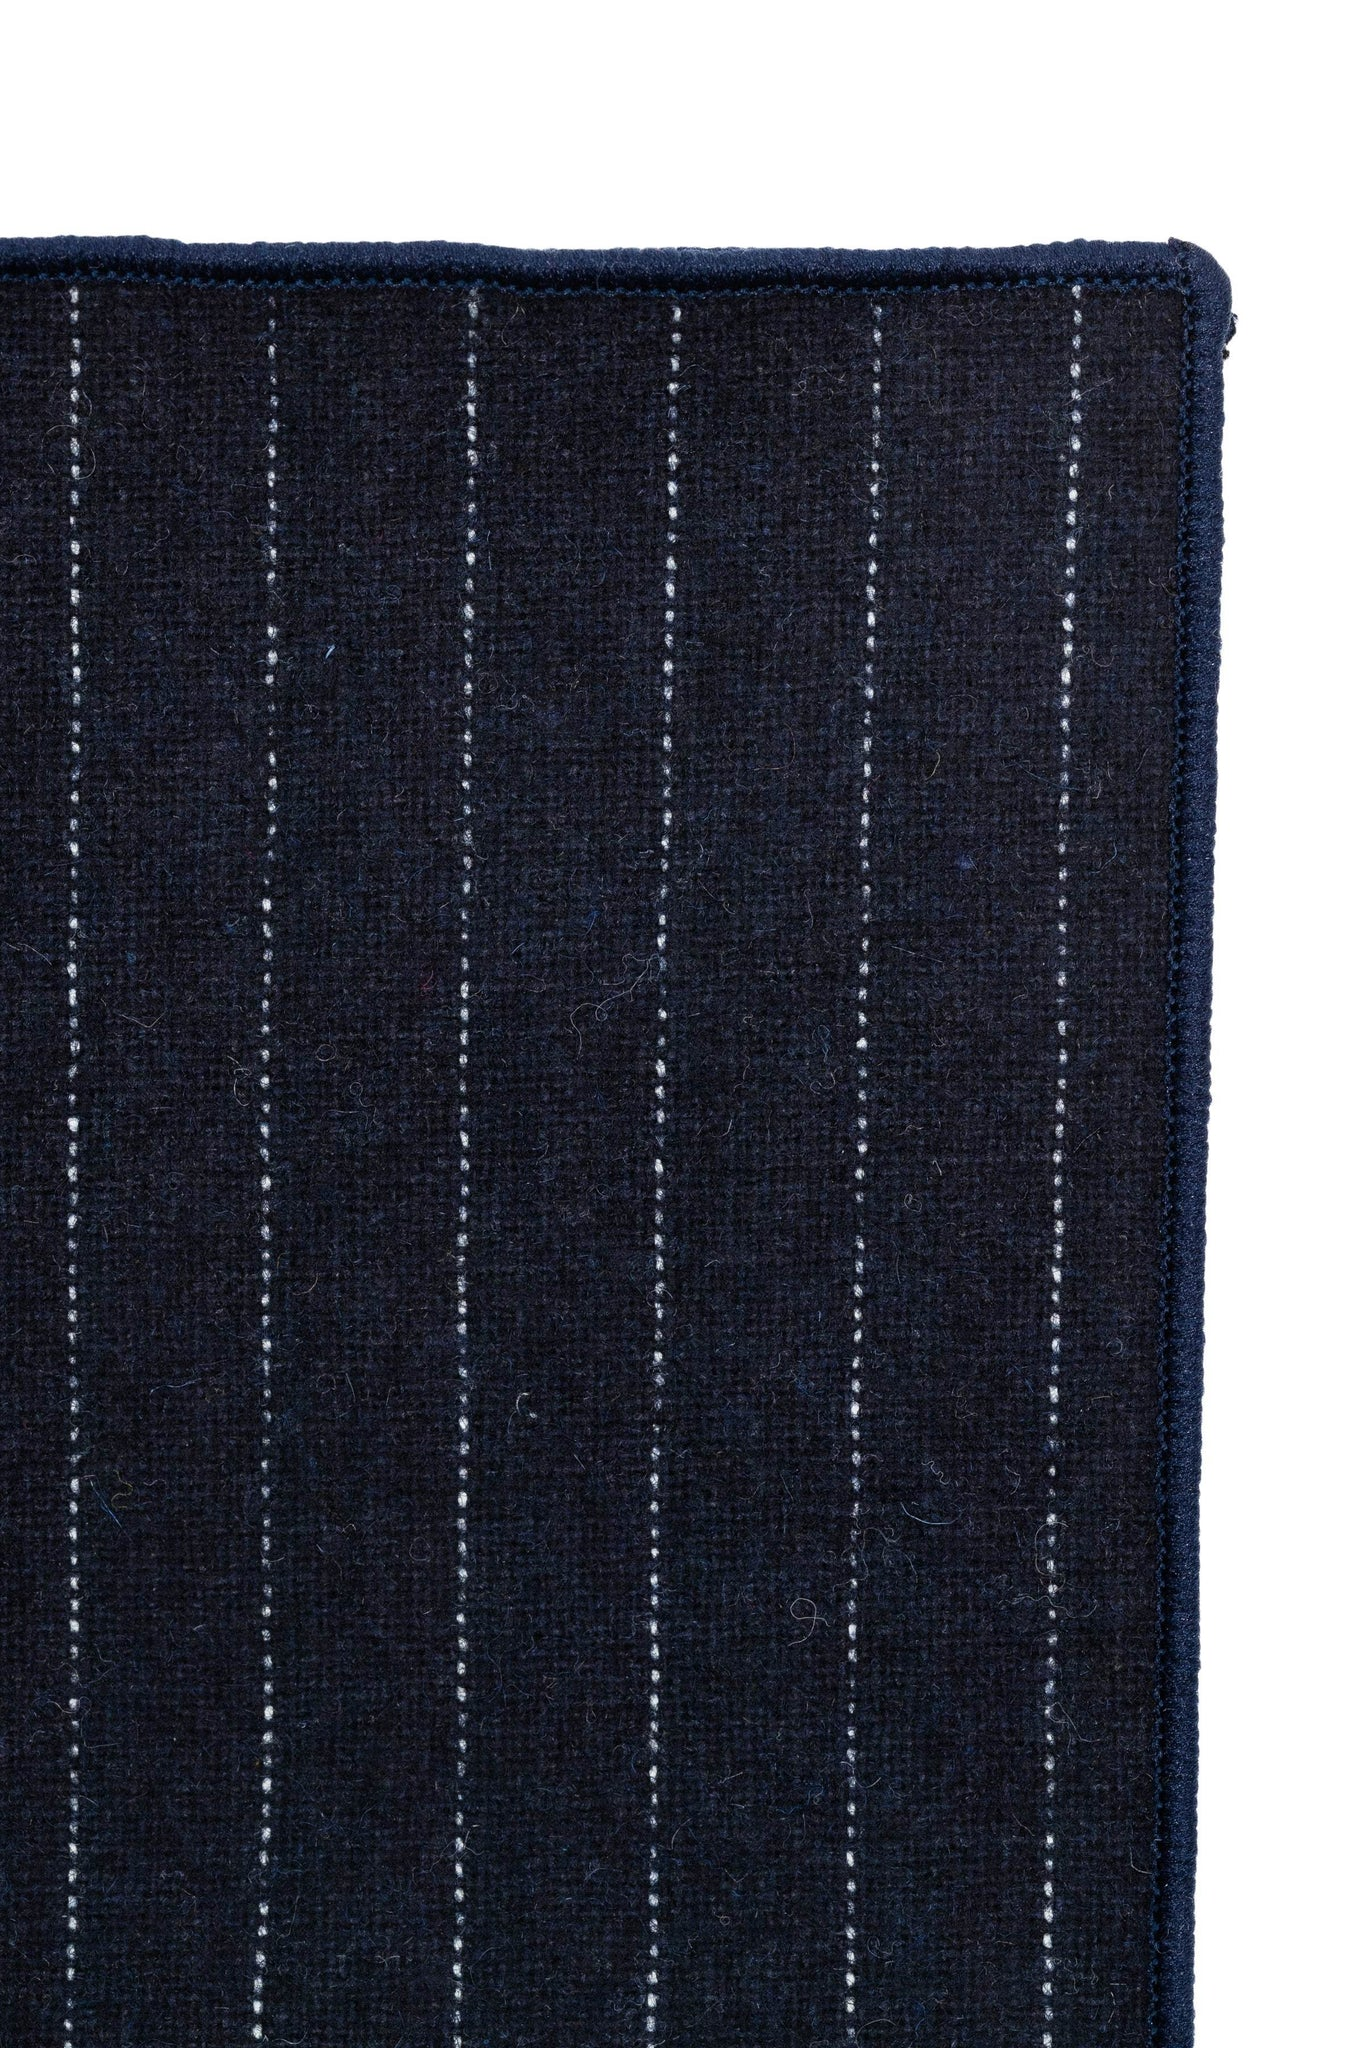 An ivy Pocket square Navy Pinstripe Wool Pocket